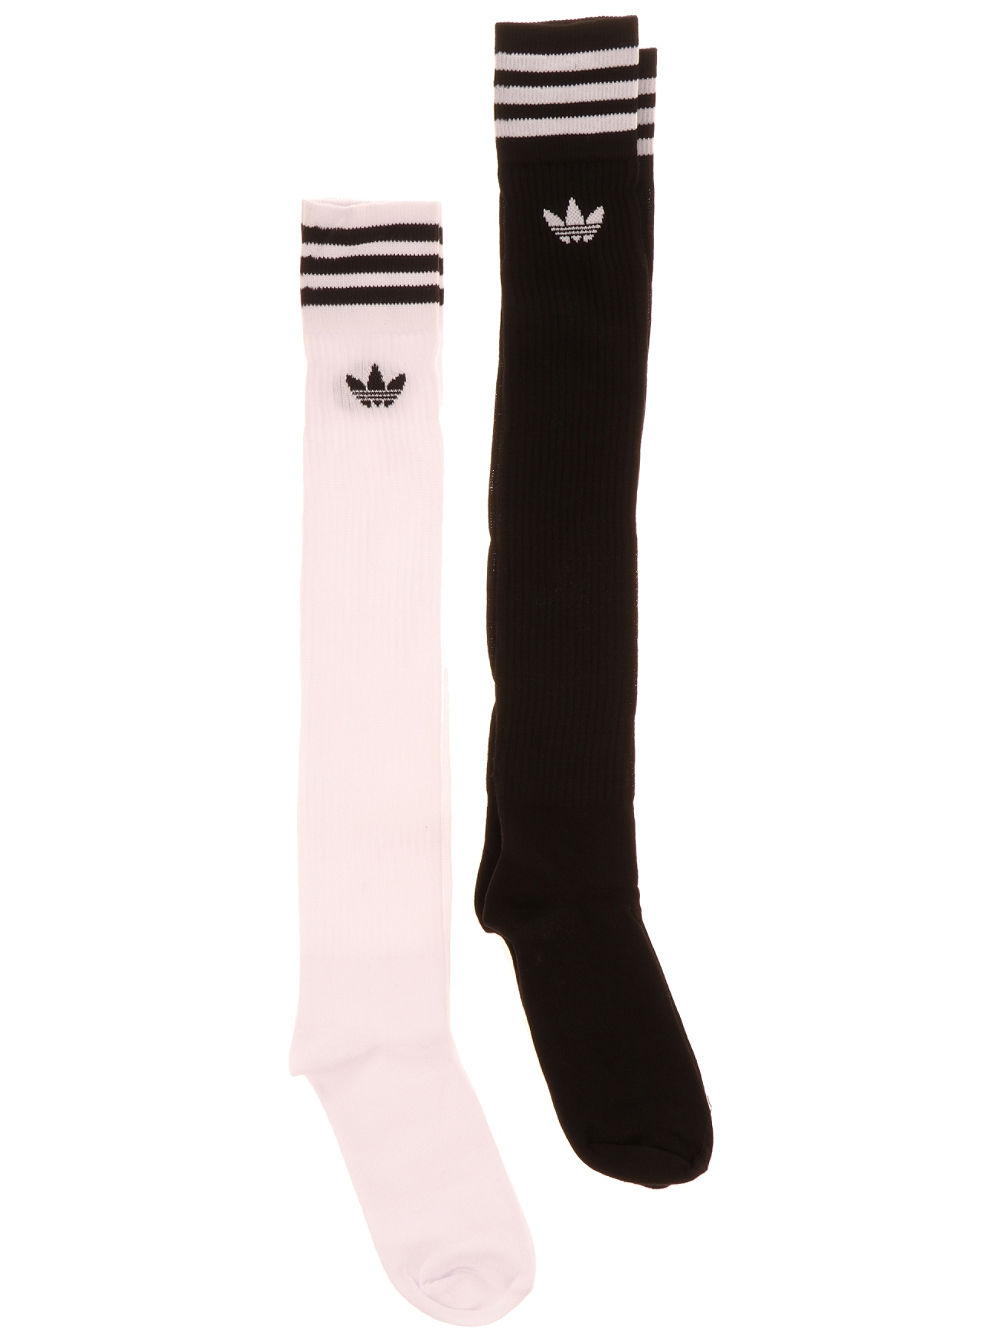 9dab75dff Buy adidas Originals Solid knee 2 Pk Socks online at Blue Tomato